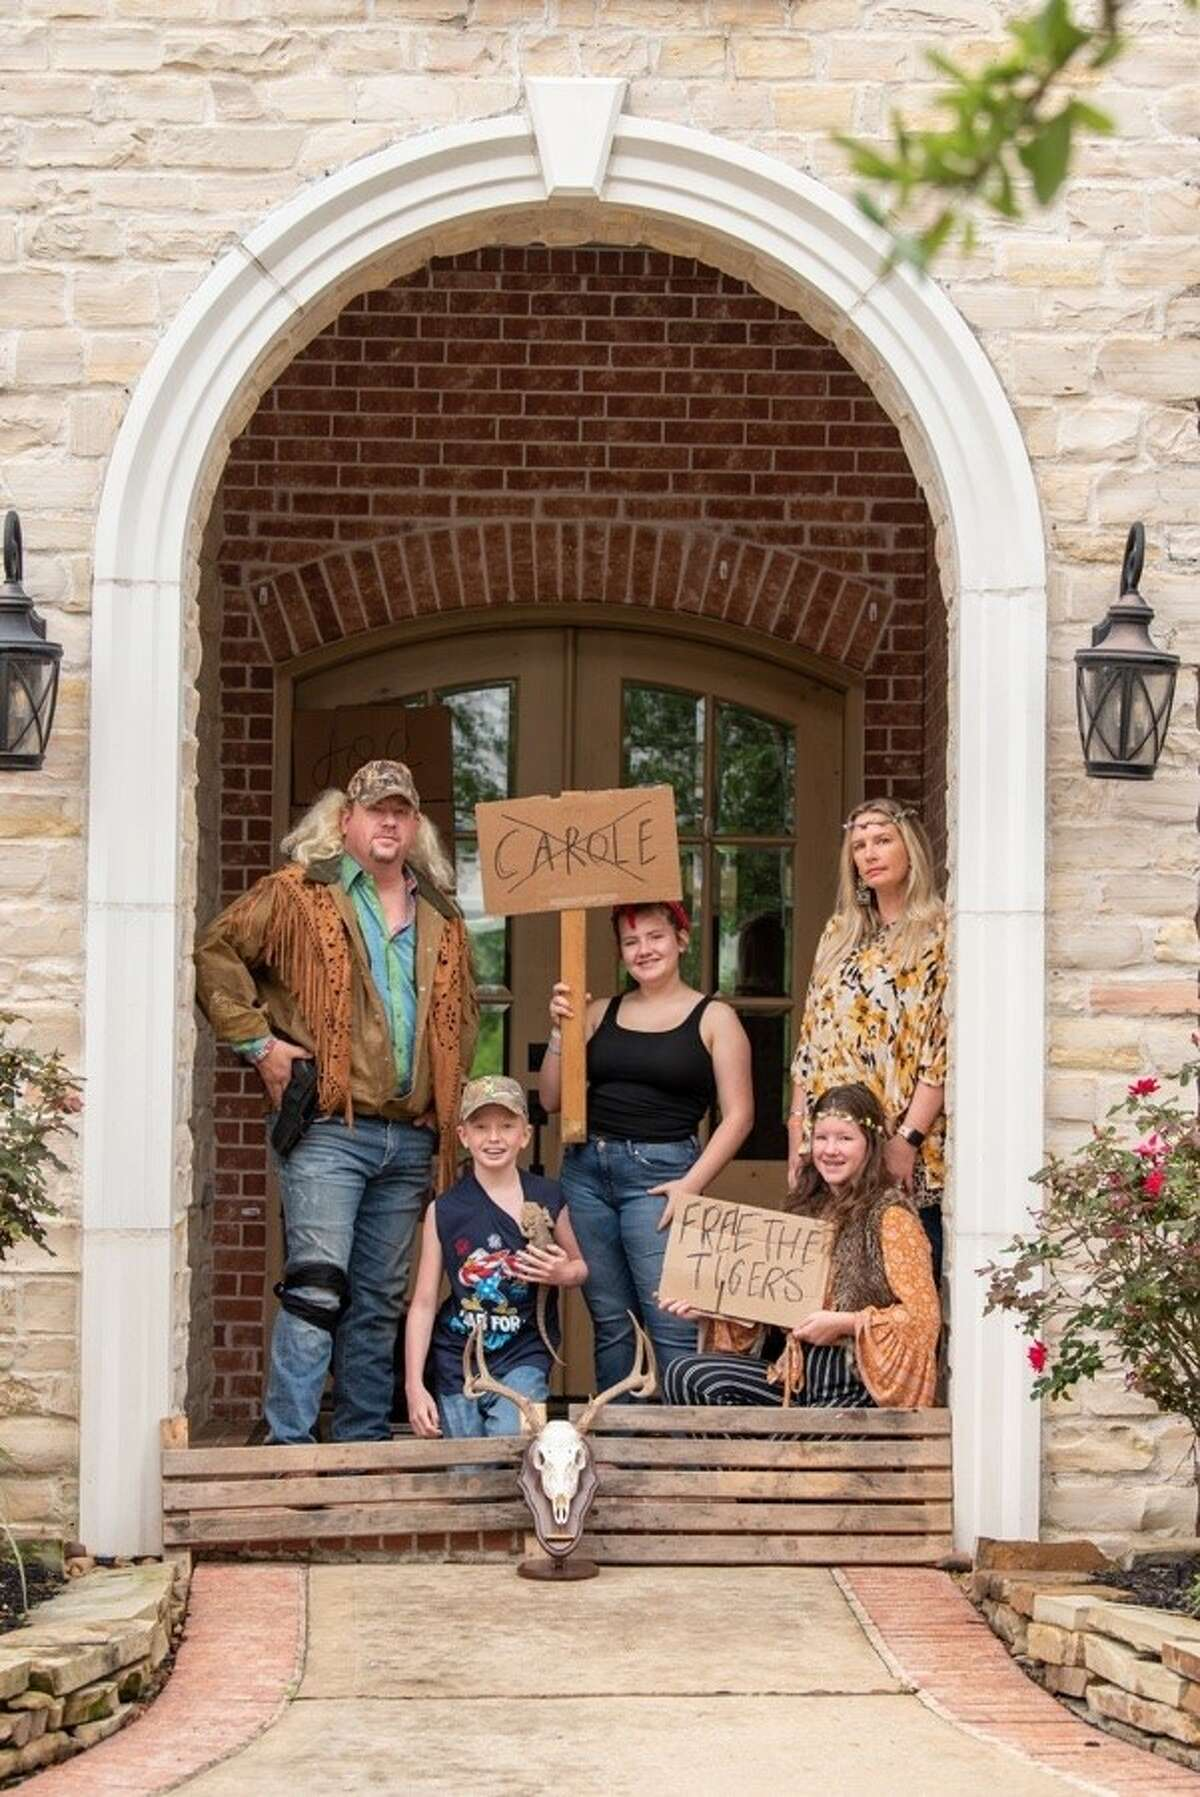 Families in the Cole's Crossing neighborhood of Cypress decided to share their candid, creative photos of